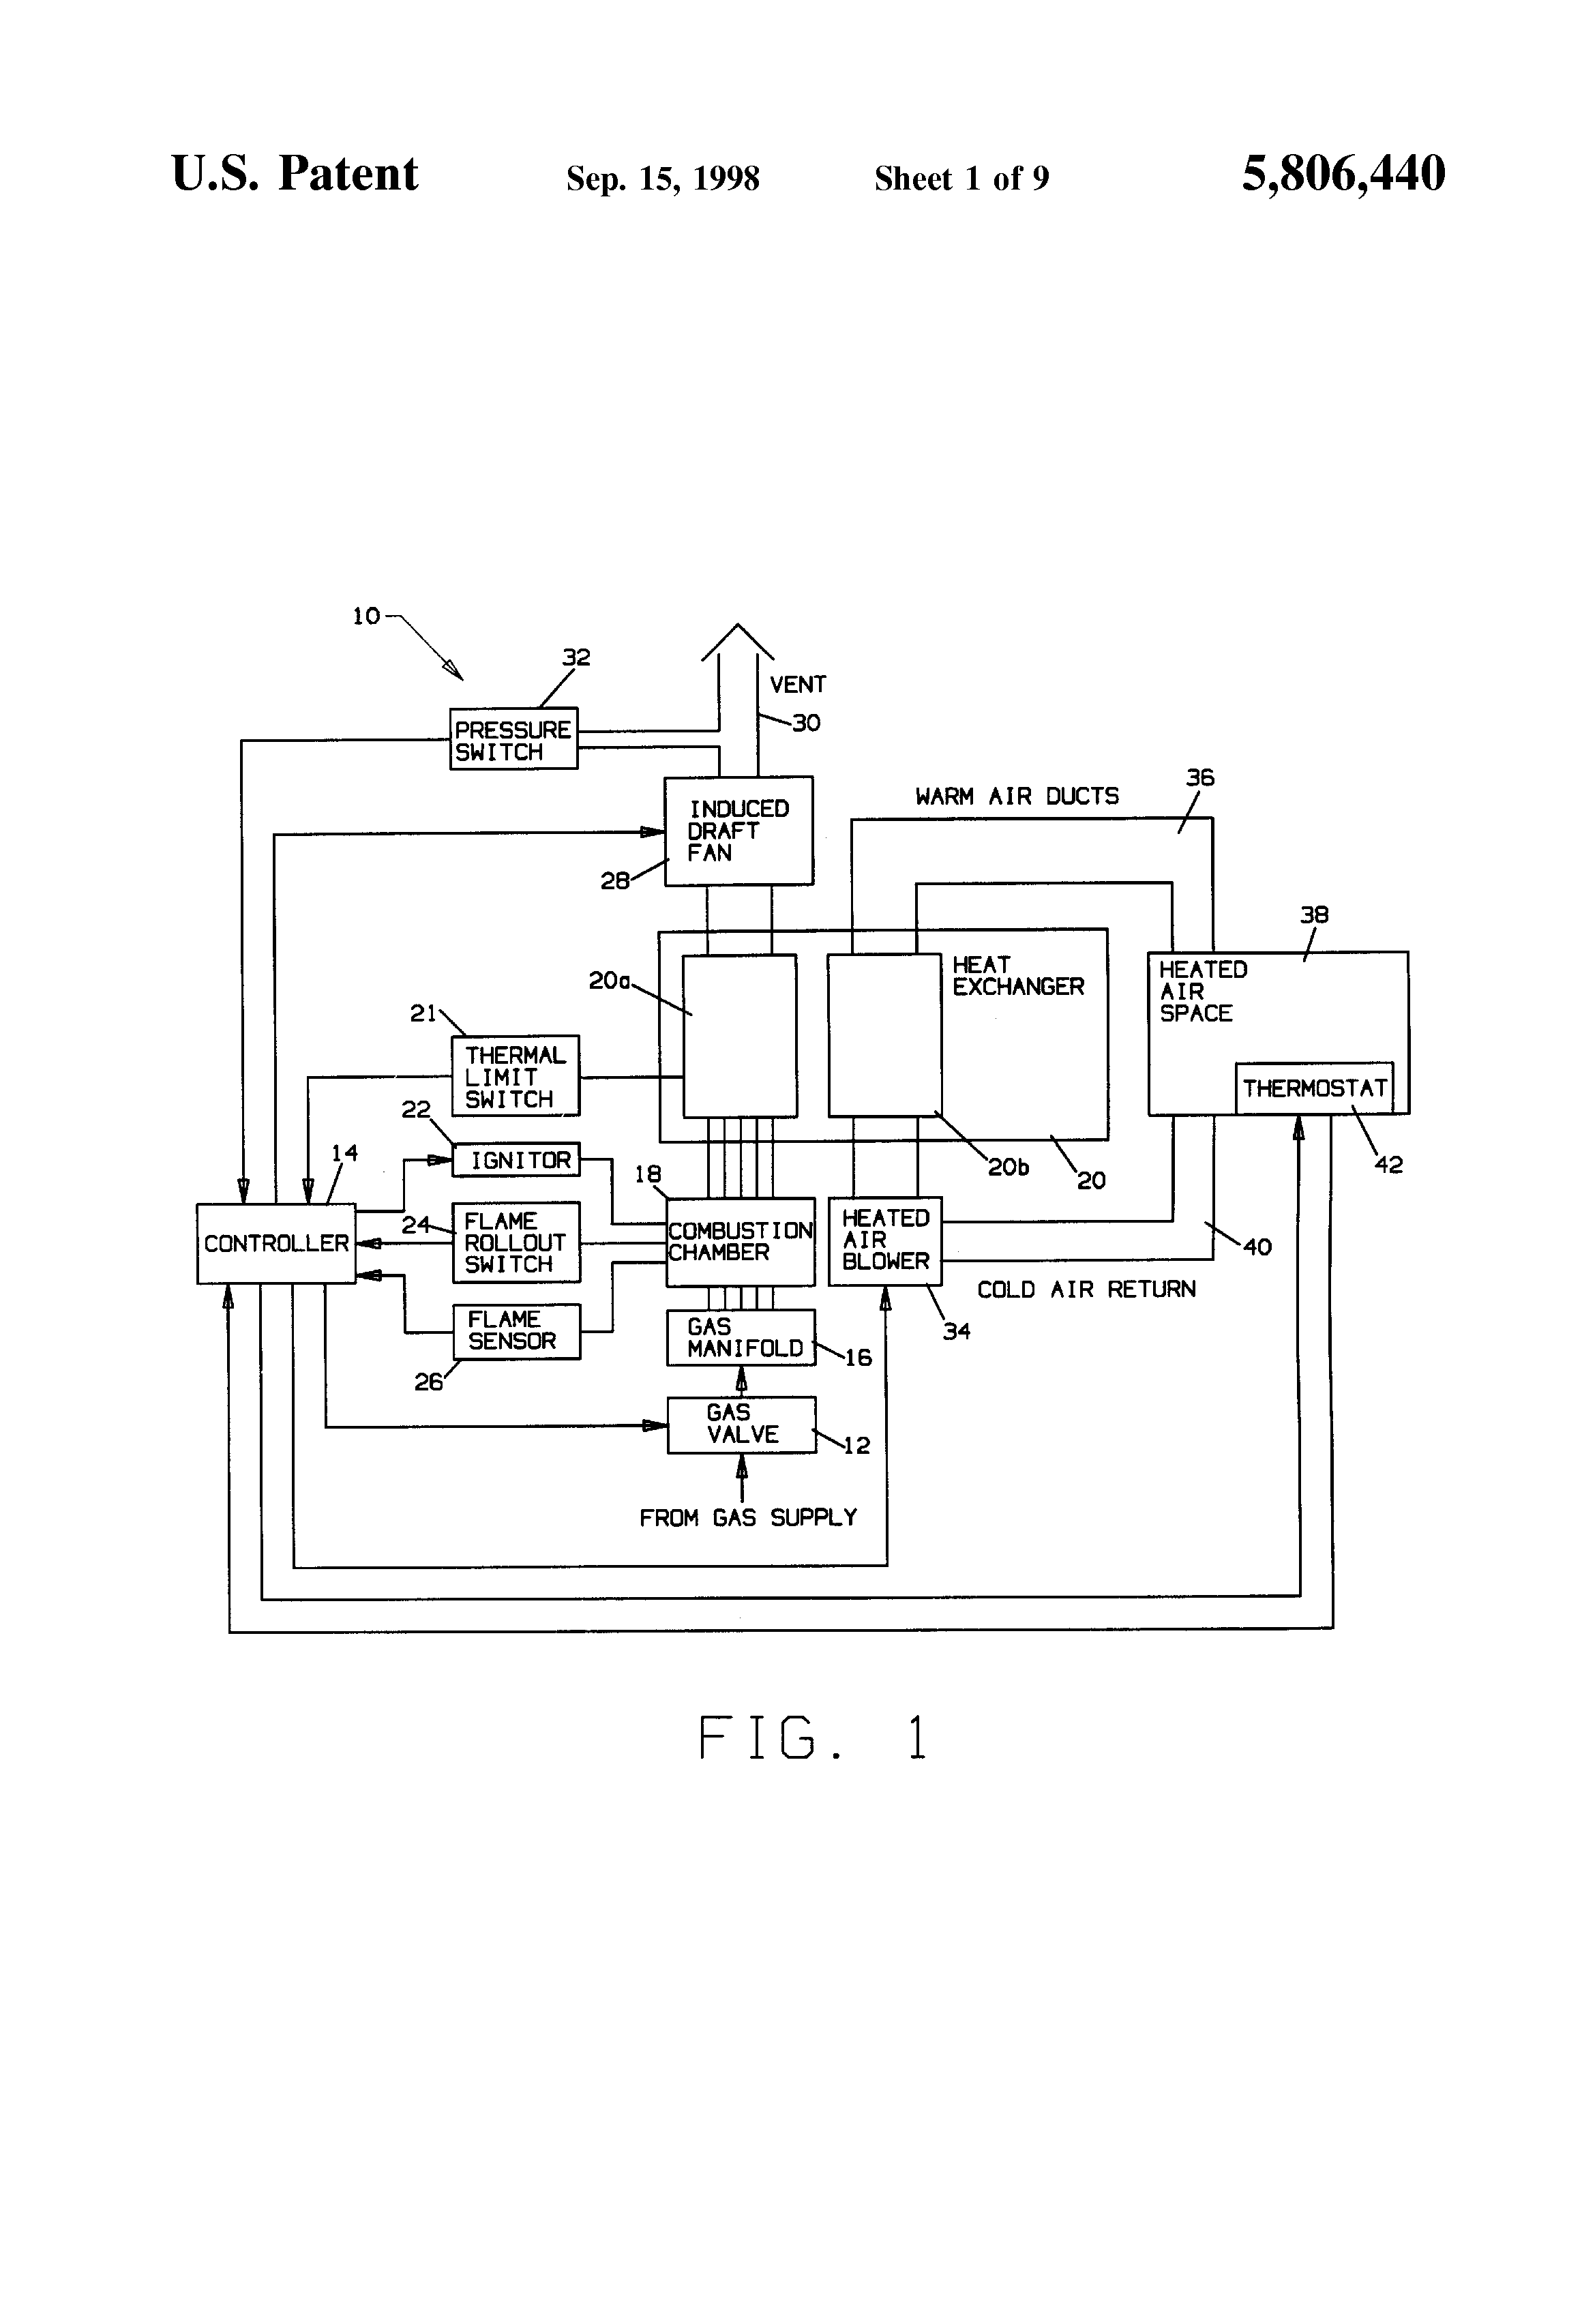 reznor wiring diagram spark plug wires patent us5806440 - method for controlling an induced draft fan use with gas furnaces ...